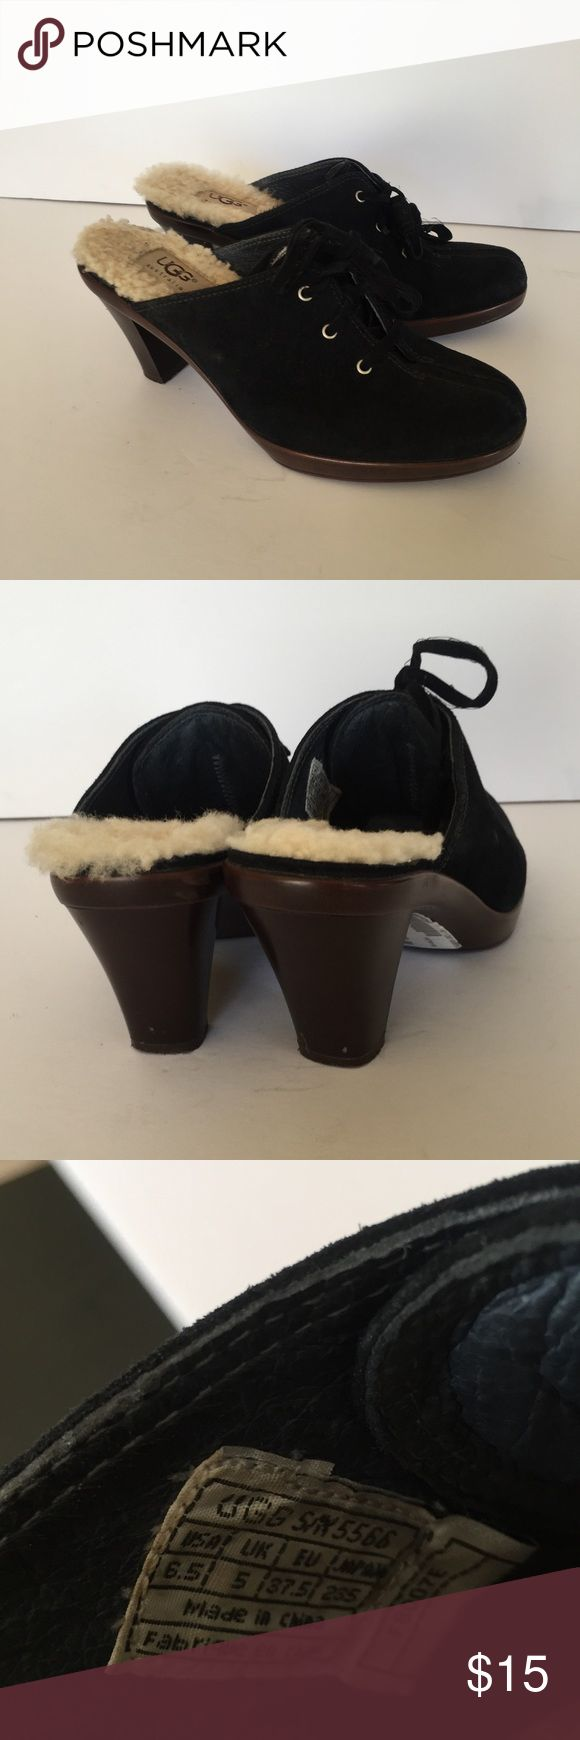 Ugg Women's Mule clogs fur lined Sz 6.5 Great condition. Size 6.5. Minor scuff marks on the back of heel. Shown in pictures UGG Shoes Mules & Clogs